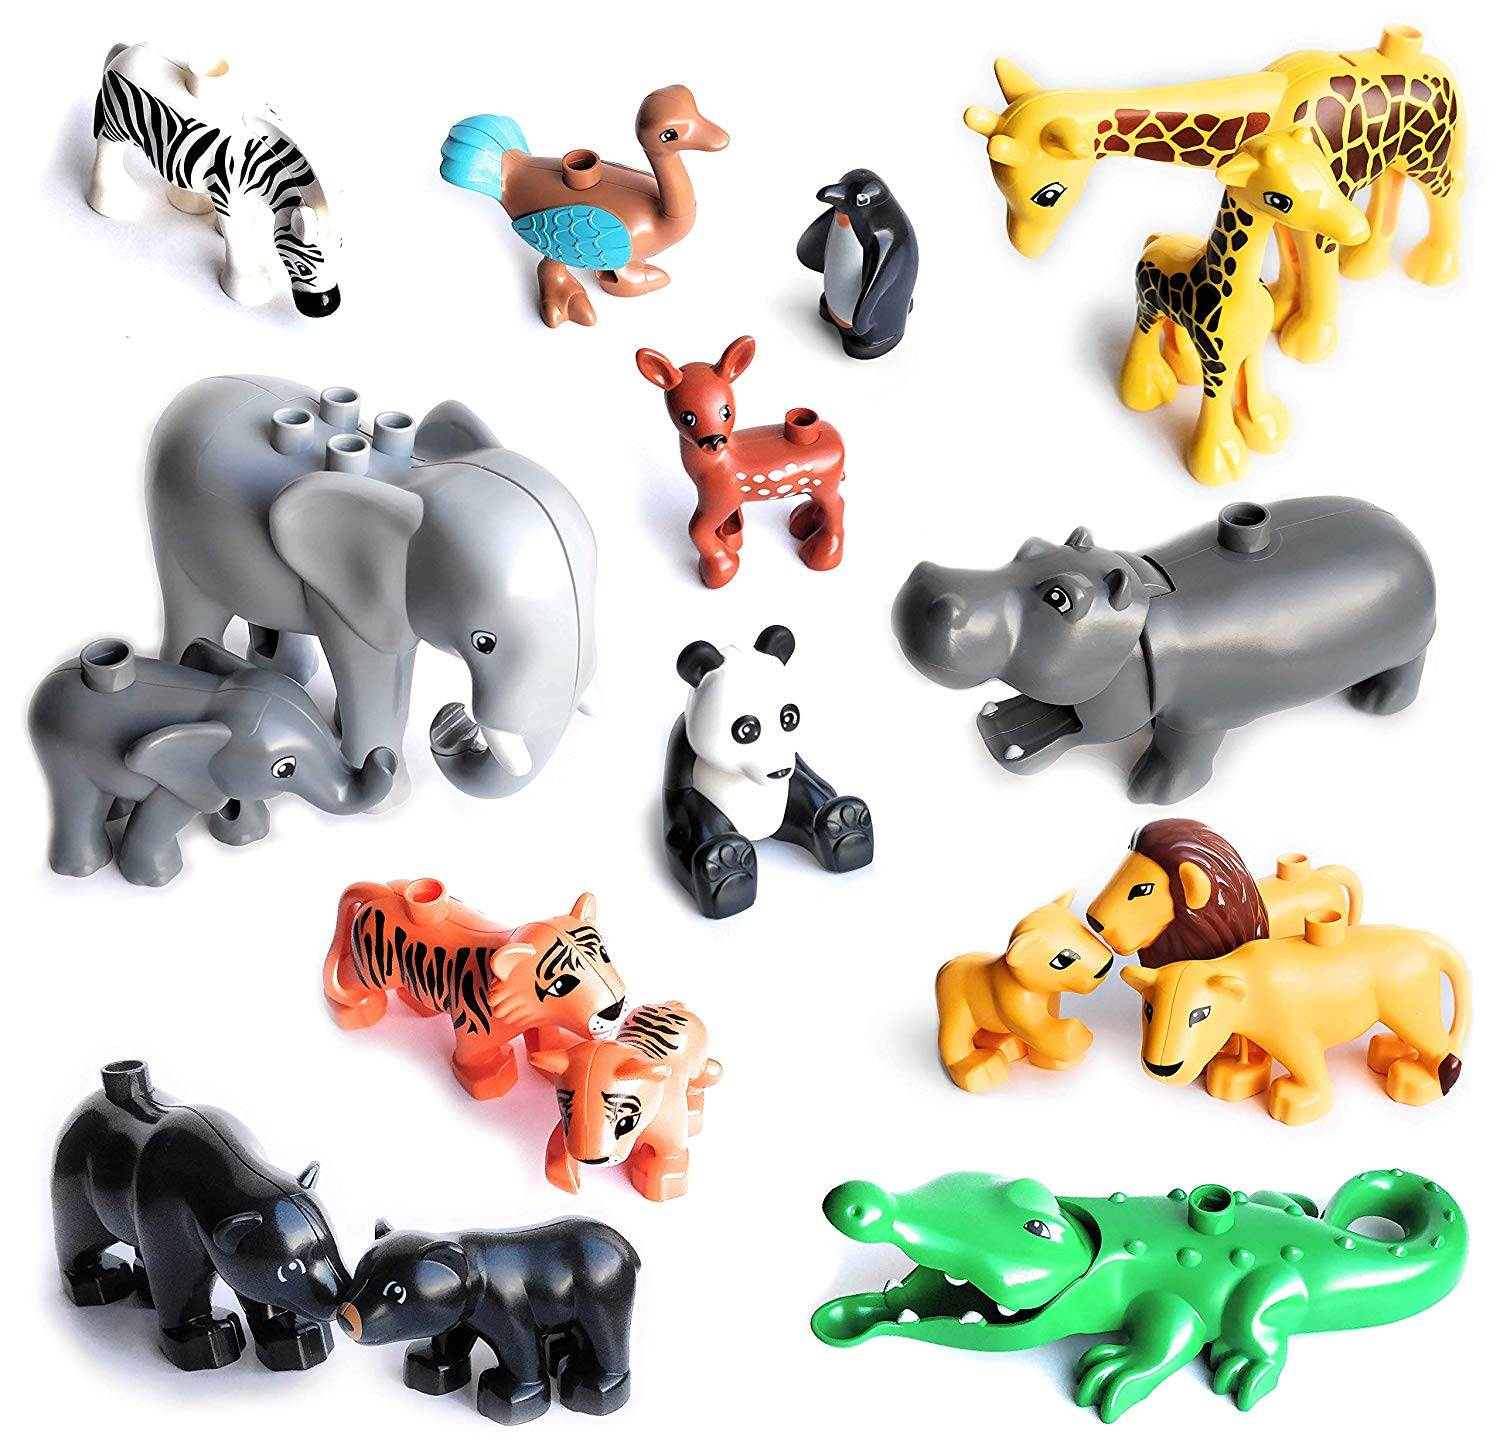 Duploe Big Size Diy Building Blocks Animal Accessories Figures Lion Panda Compatible with Duploed Toys for Children Kids Gifts(China)